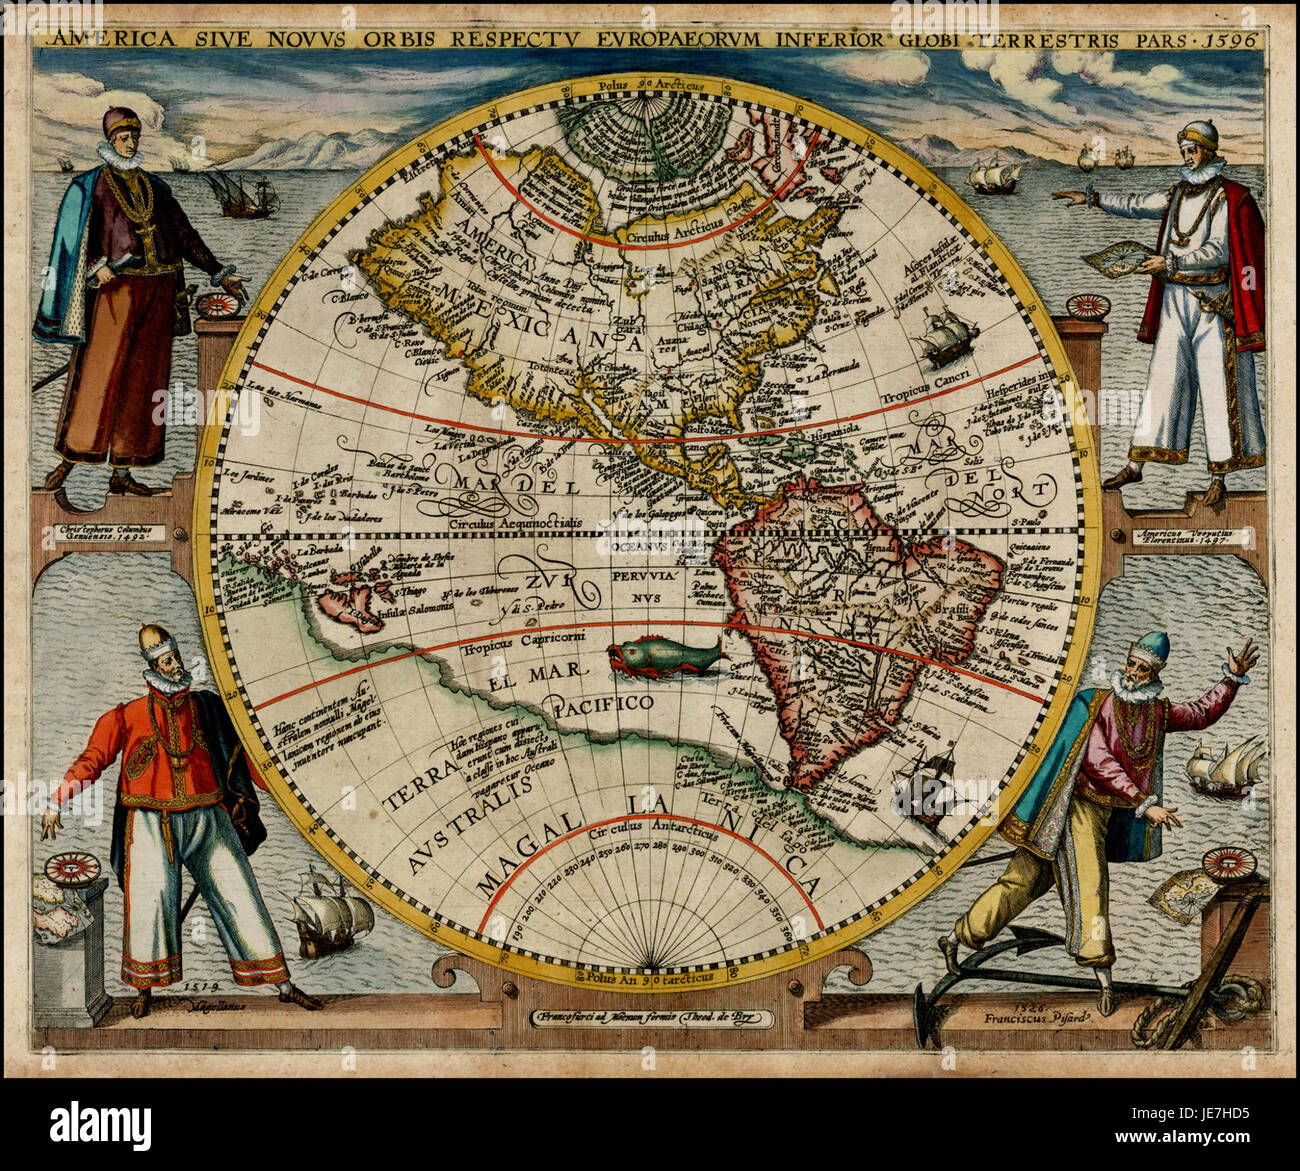 America or the new world map by theodor de bry 1596 stock photo america or the new world map by theodor de bry 1596 gumiabroncs Image collections